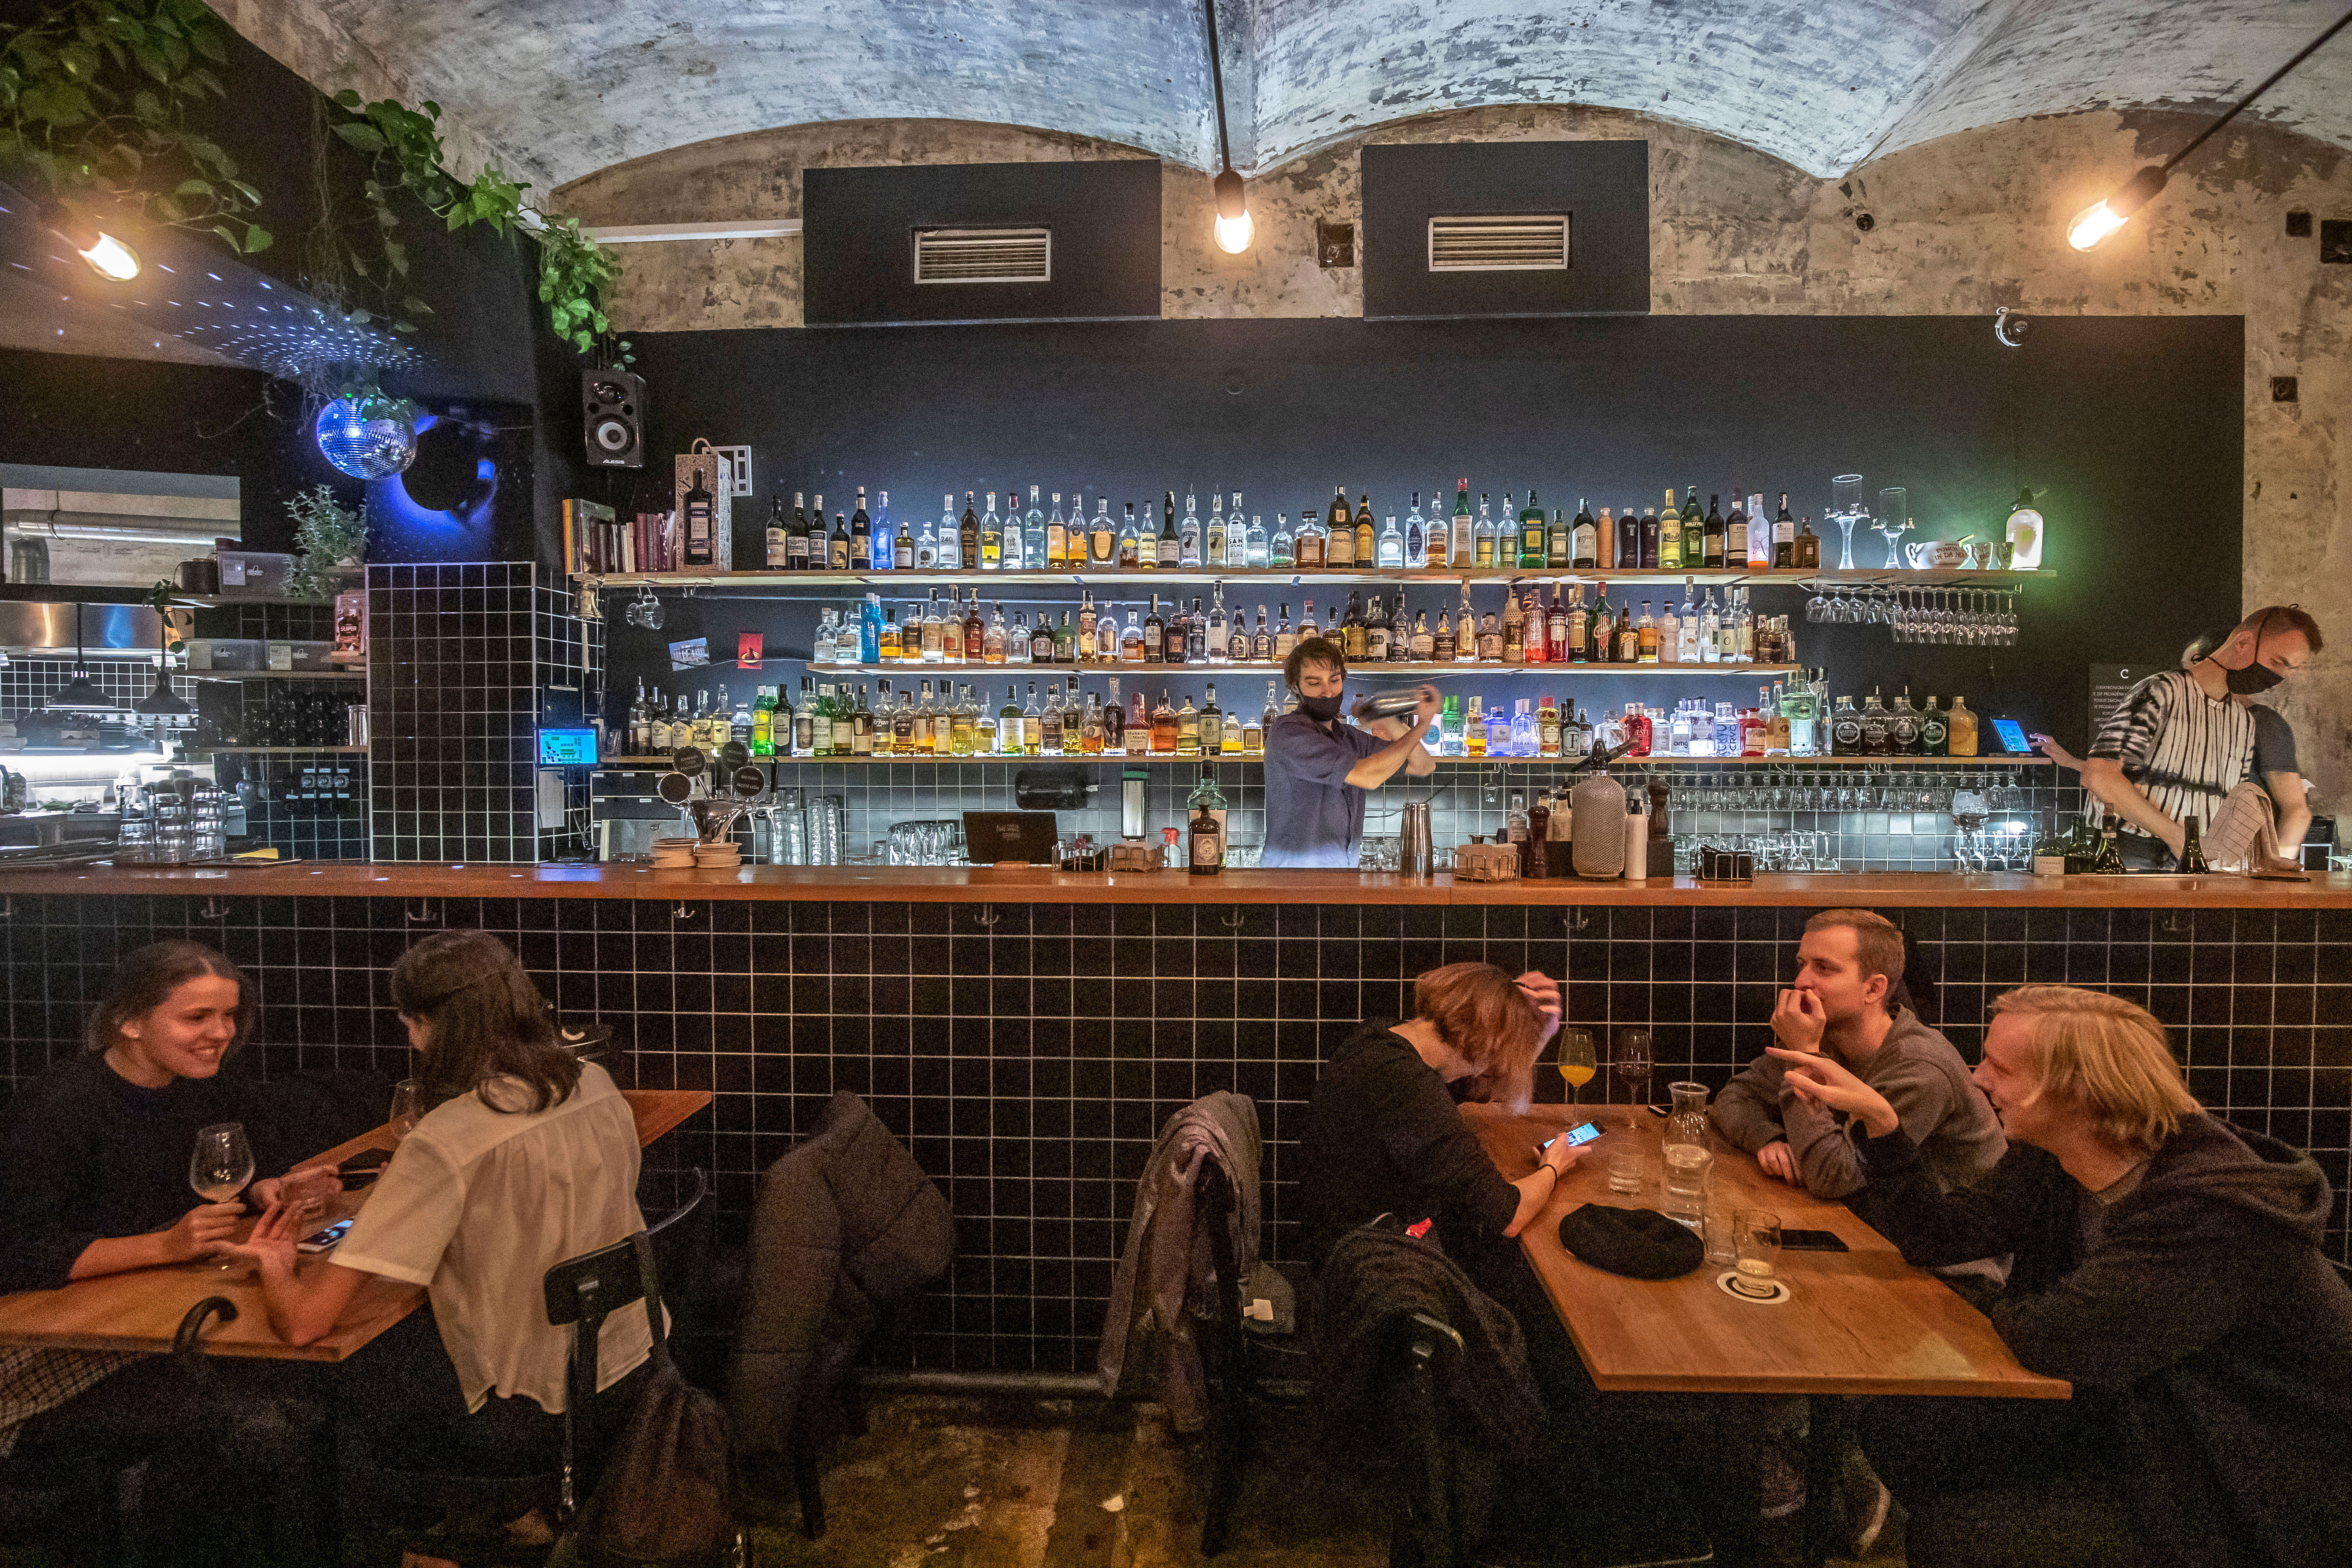 Customers drink in a bar shortly before closing time in Prague, Czech Republic, on October 10.